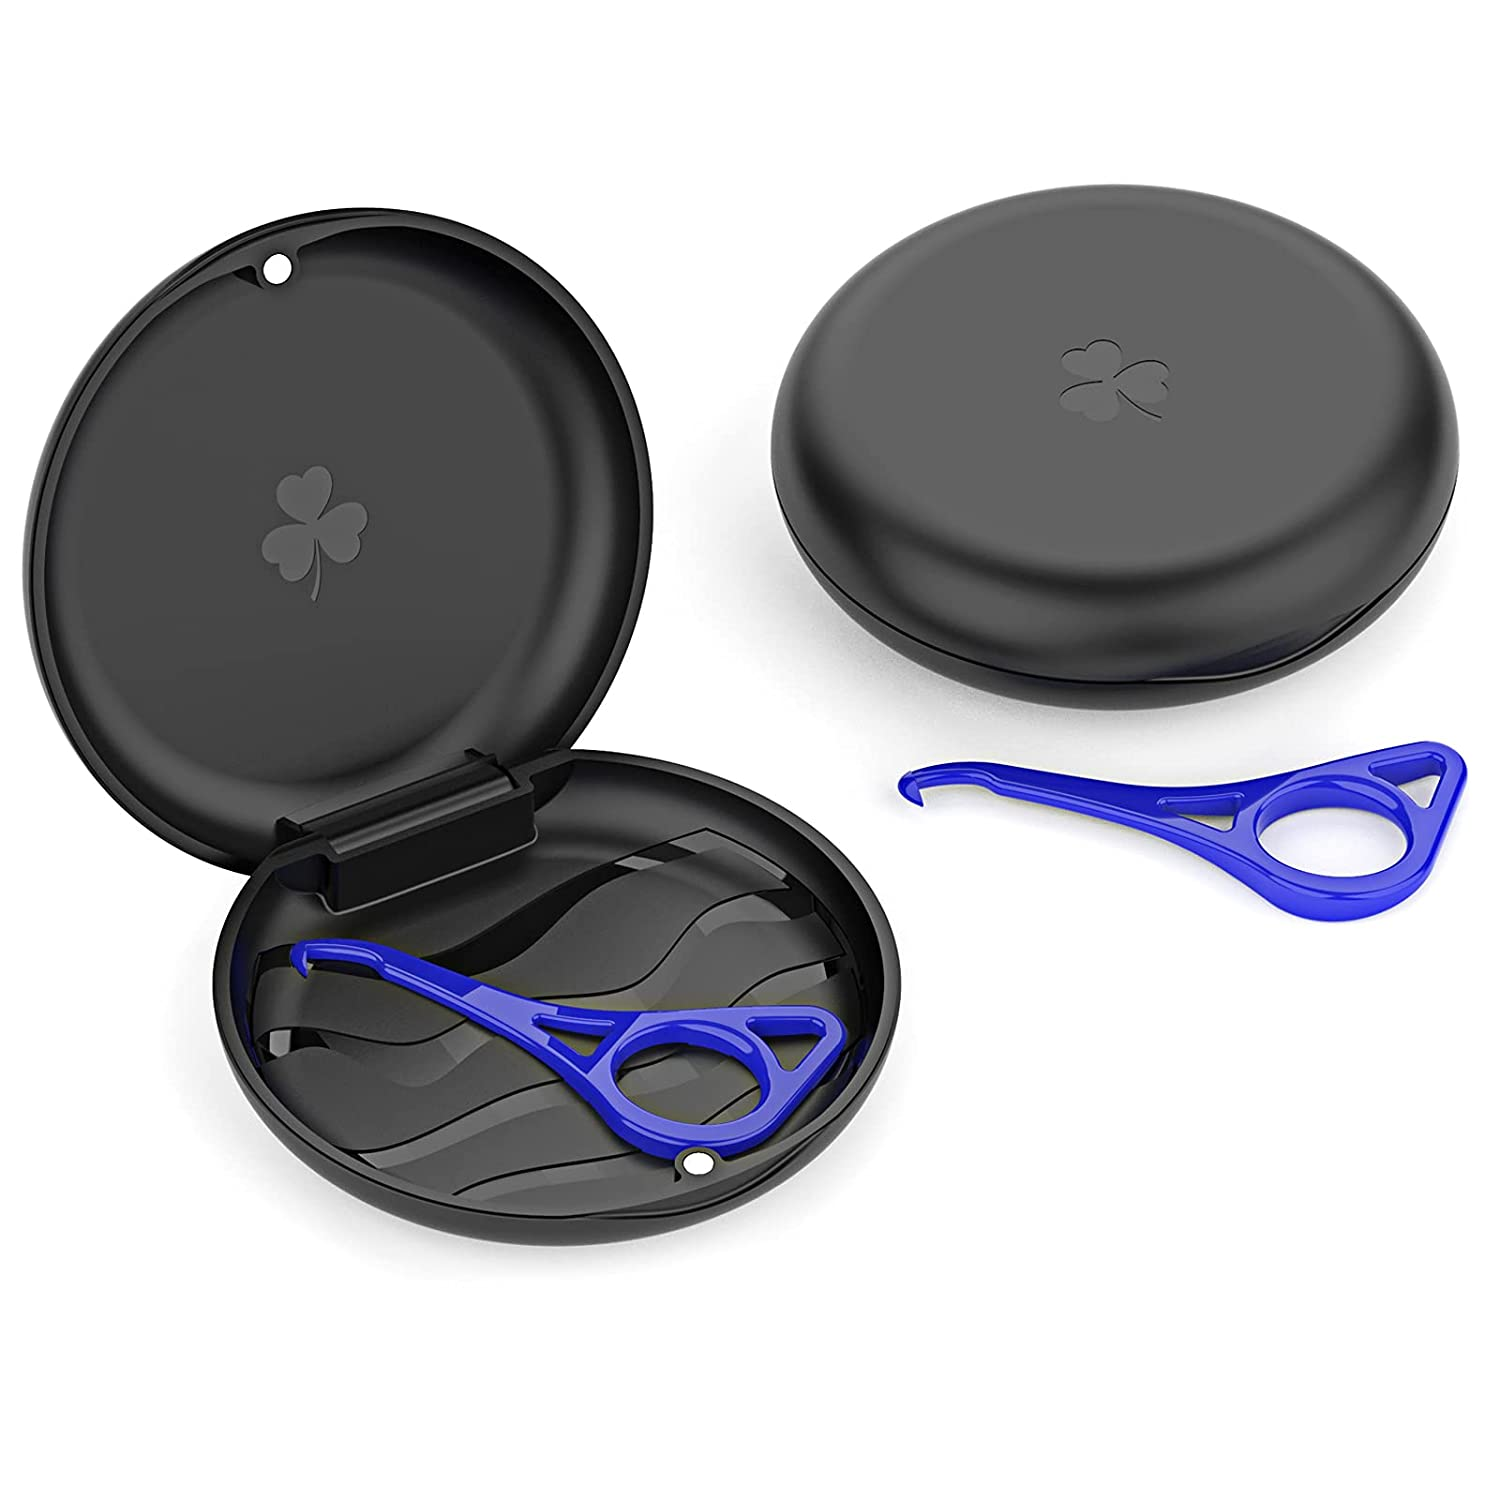 Aligner and Retainer Case with Special Magnetic Closure and 3-leaf Clover Design, 2 Pack (Black)